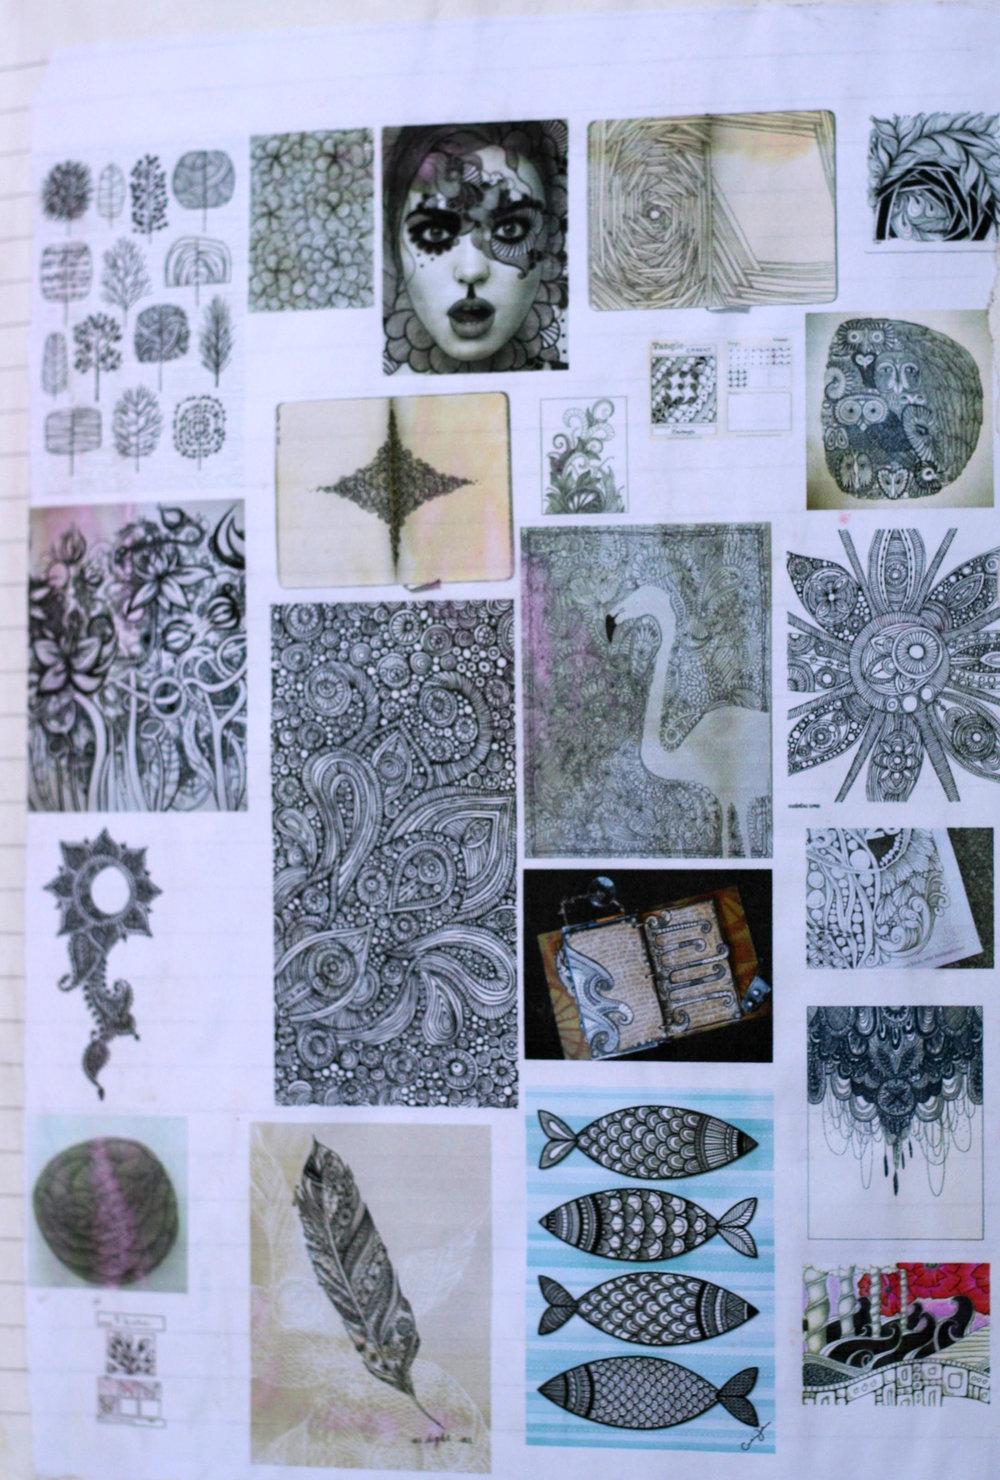 *Not my art. This is an artist study of zentangles that I compiled and glued into my art journal.